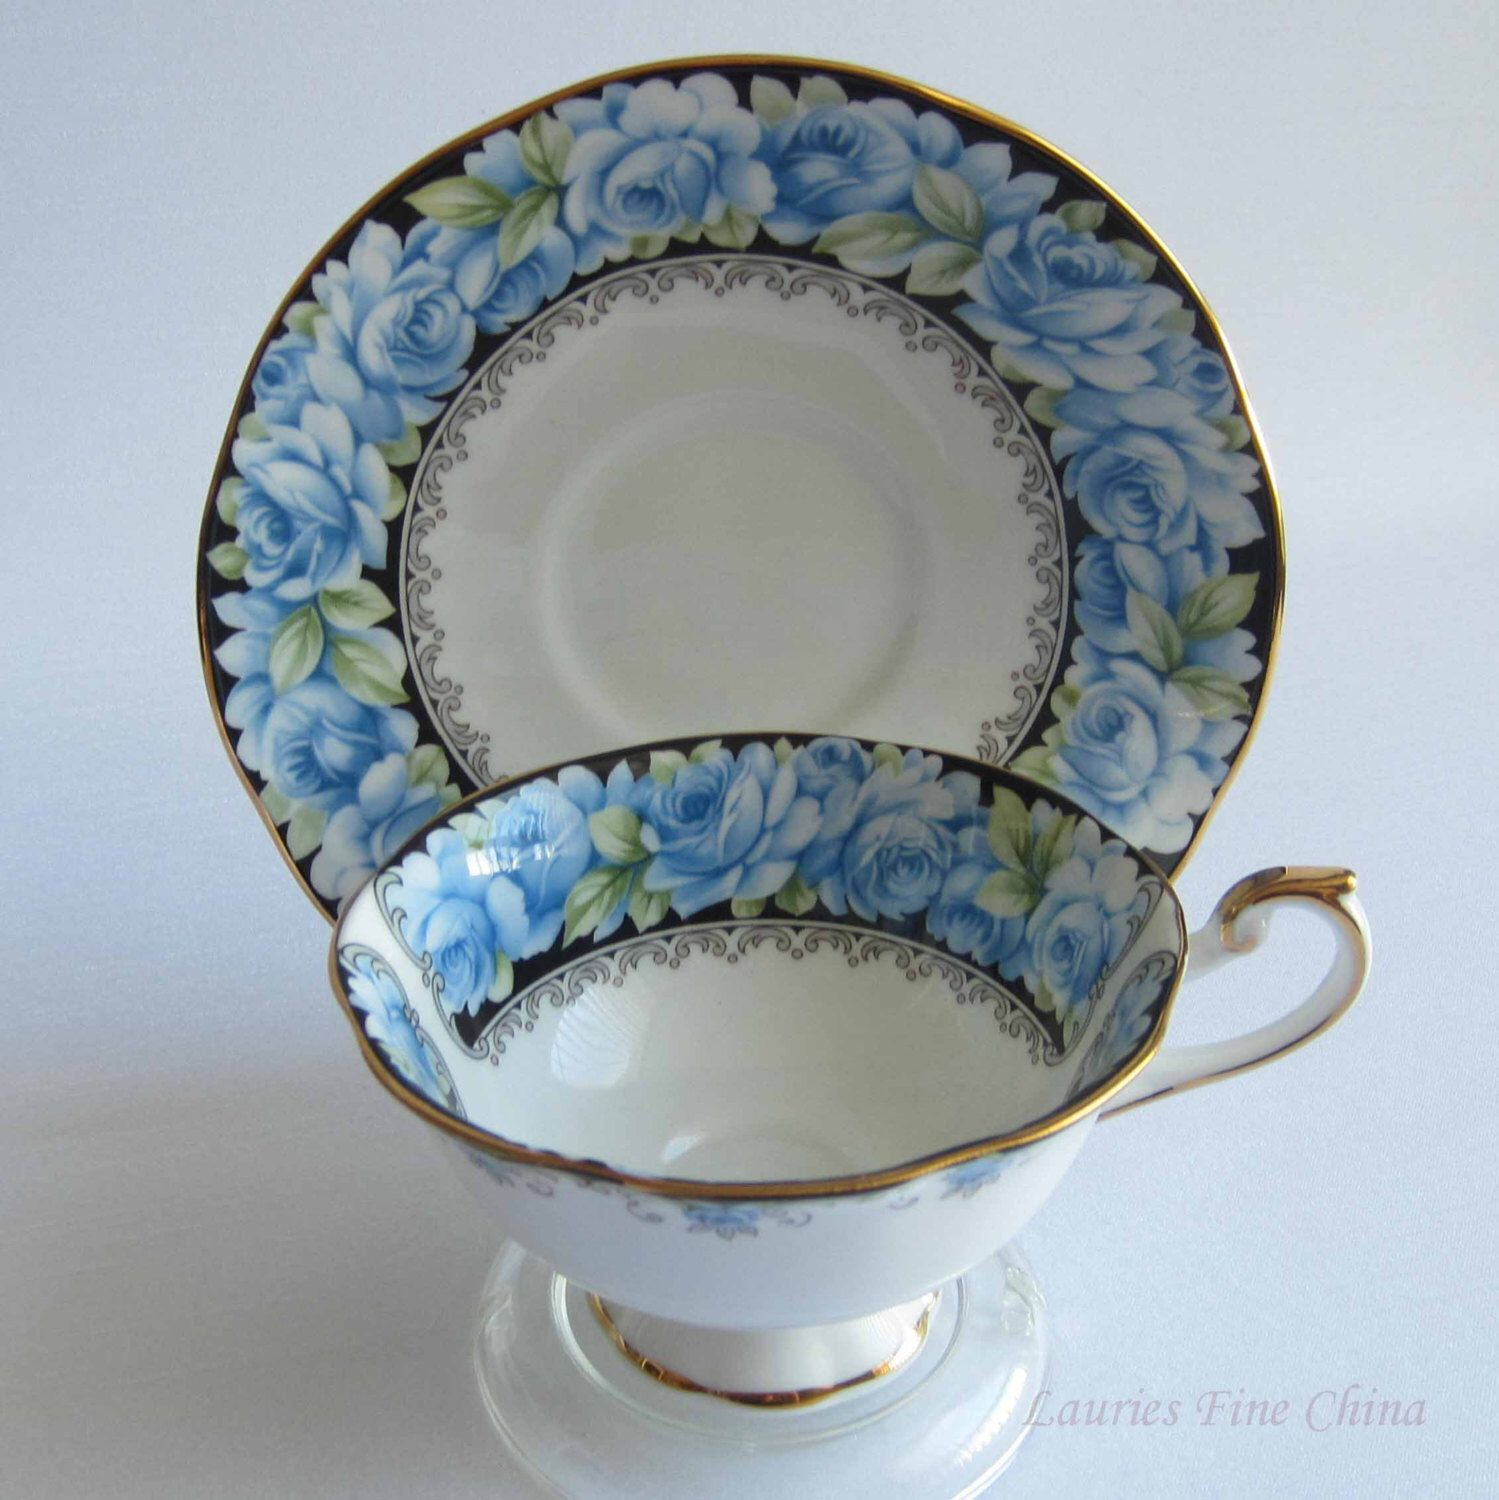 Free Shipping QUEENS by Rosina China ELIZABETH ROSE Bone China Tea Cup and Saucer by LauriesFineChina on Etsy https://www.etsy.com/listing/285568513/free-shipping-queens-by-rosina-china